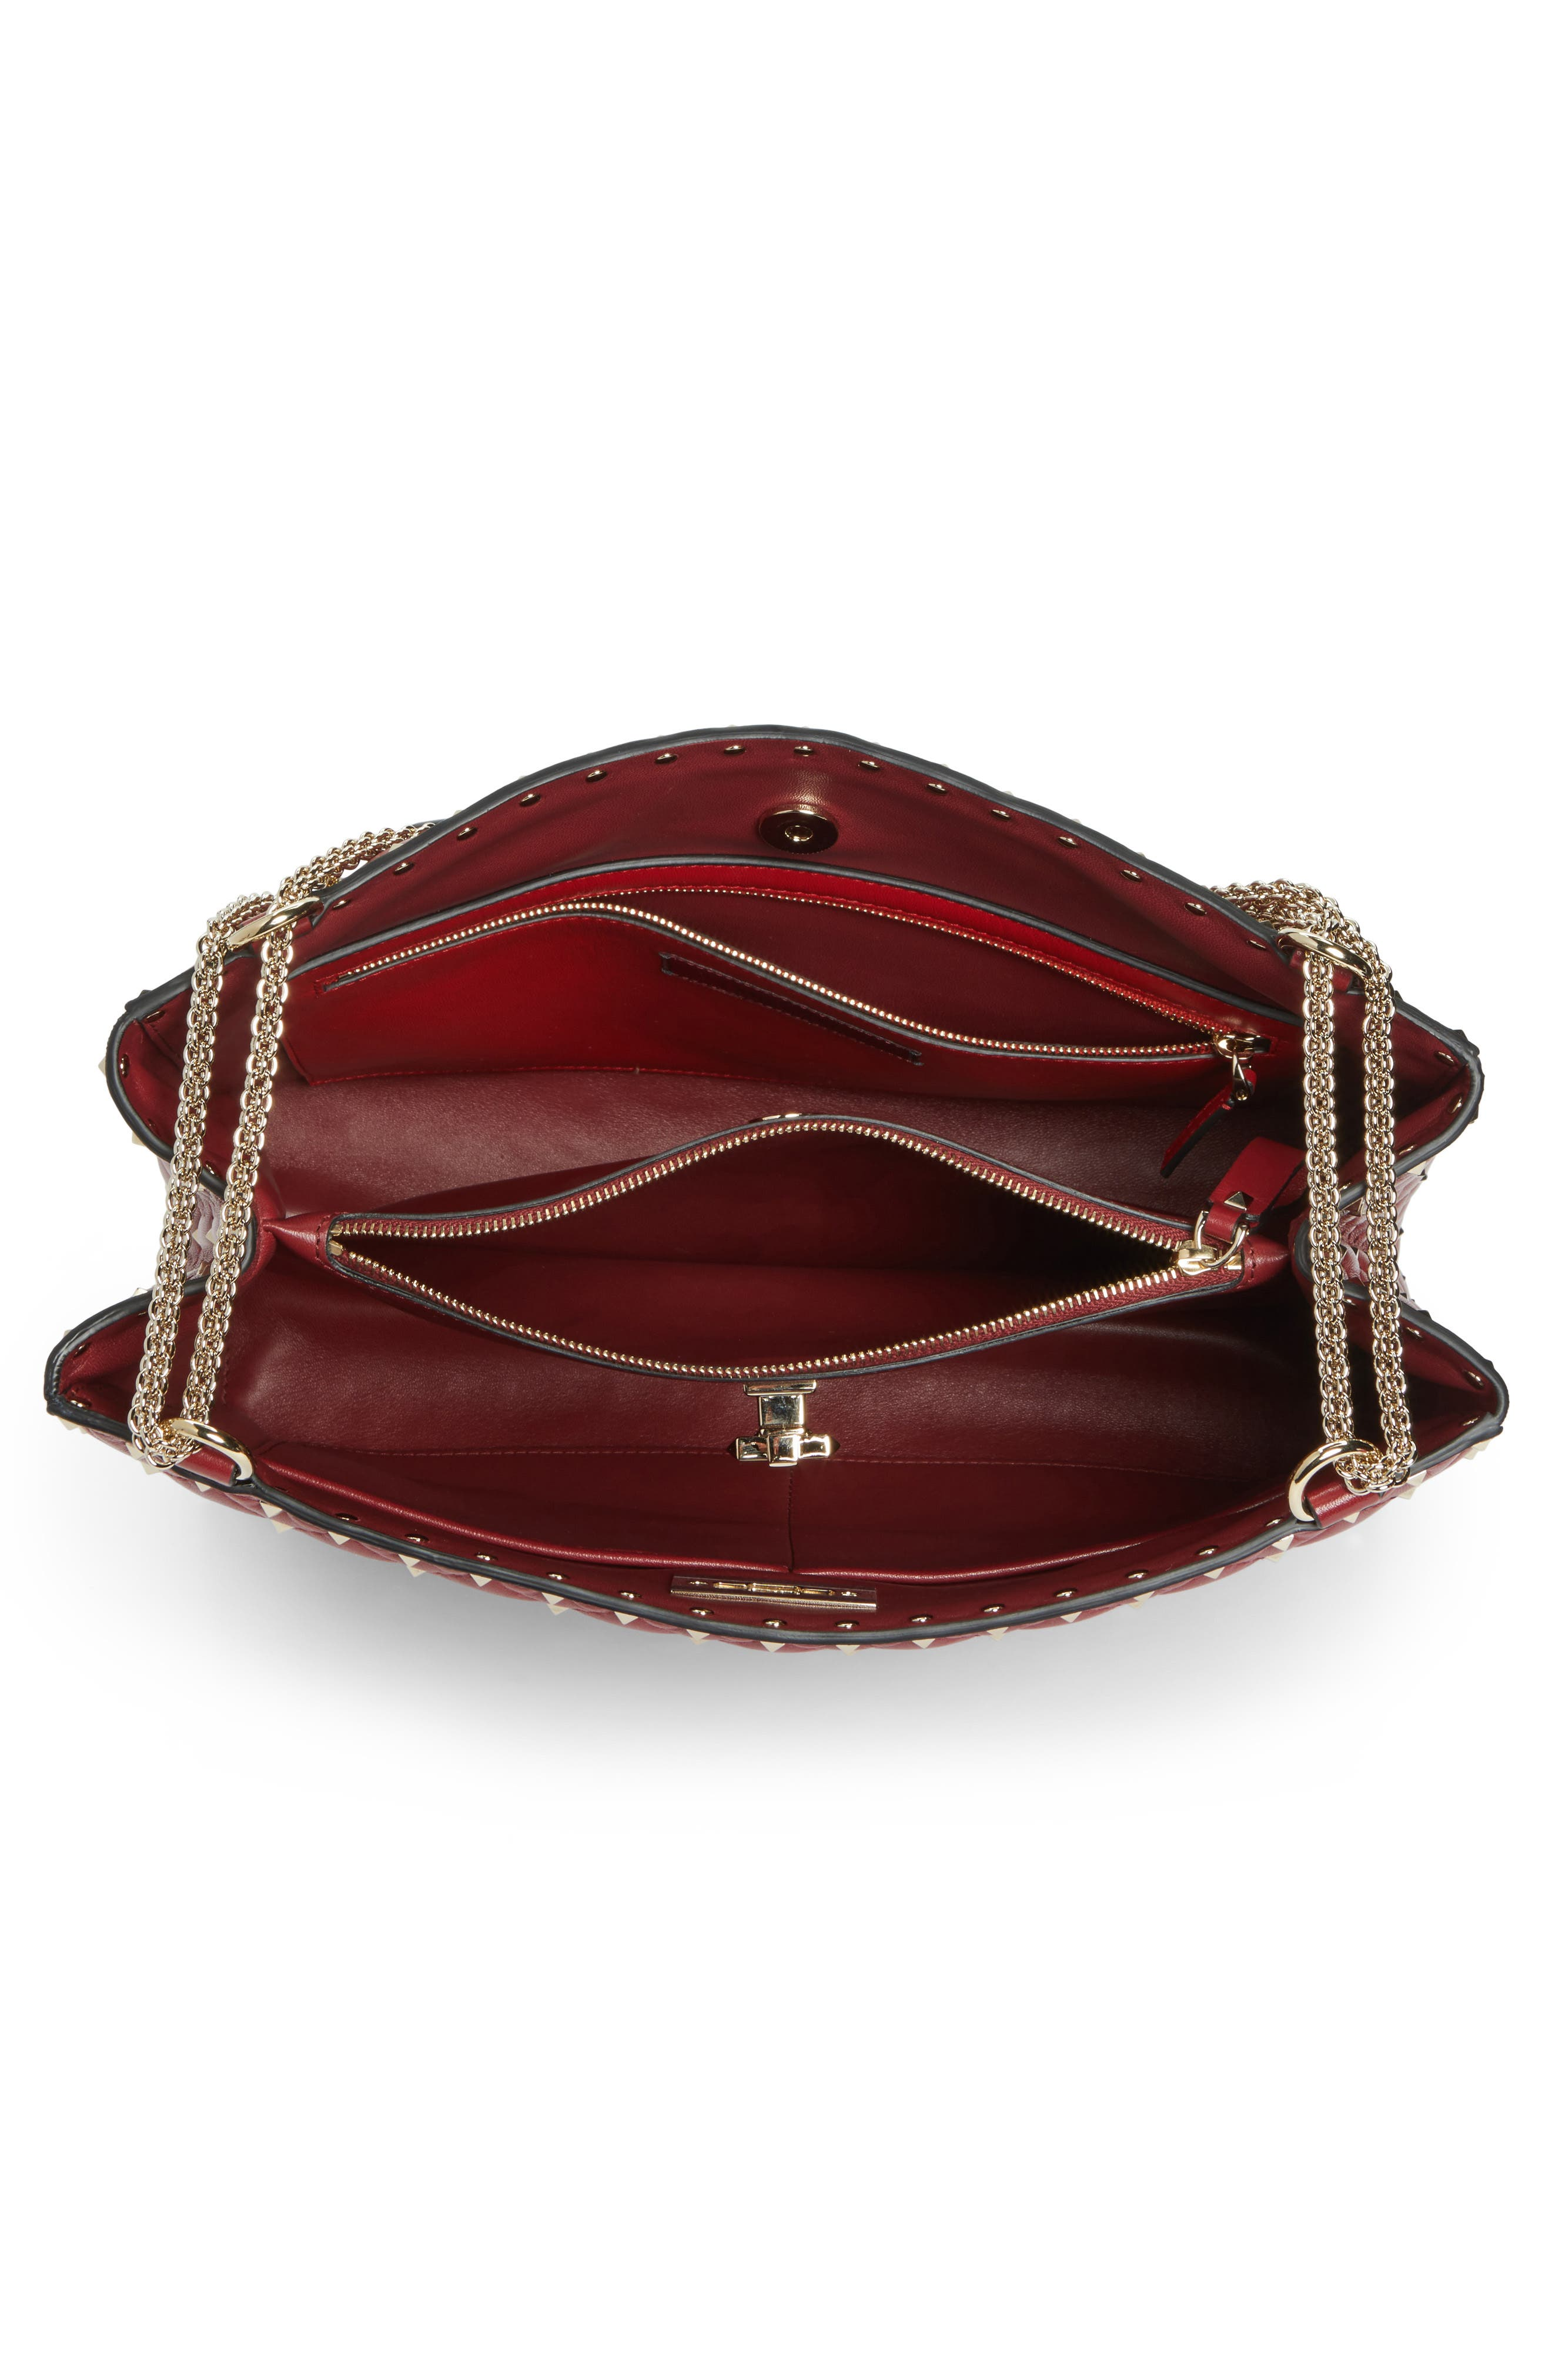 Alternate Image 3  - VALENTINO GARAVANI Rockstud Spike Quilted Lambskin Leather Shoulder Bag